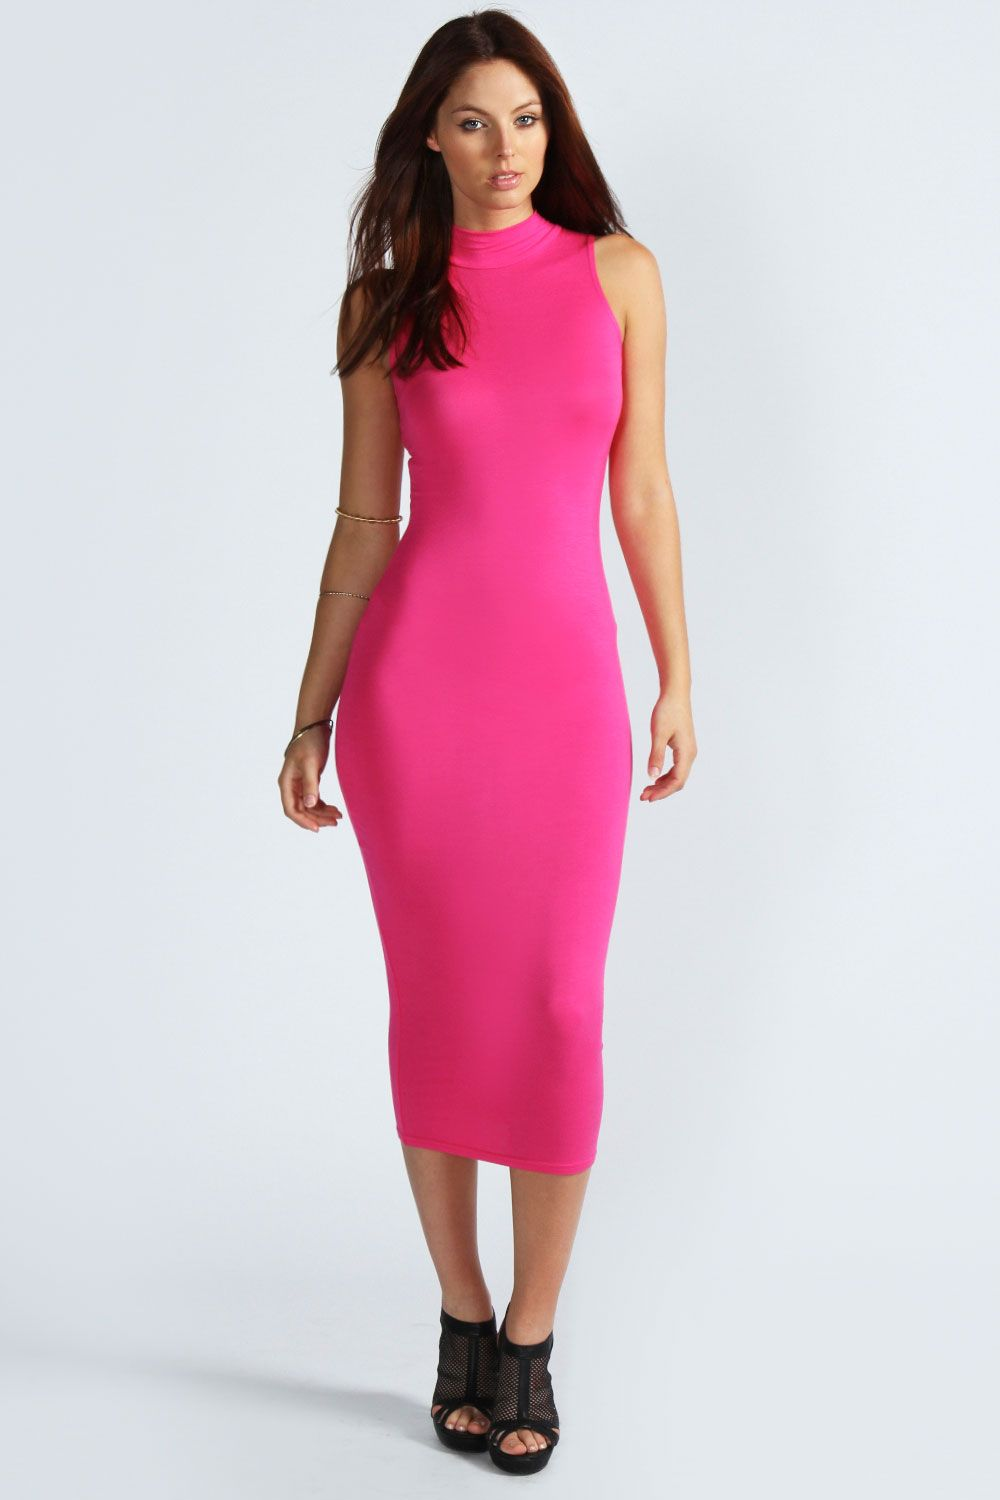 Ariana LUXE Black Lace Panel Bodycon Midi Dress | Pink Boutique ...